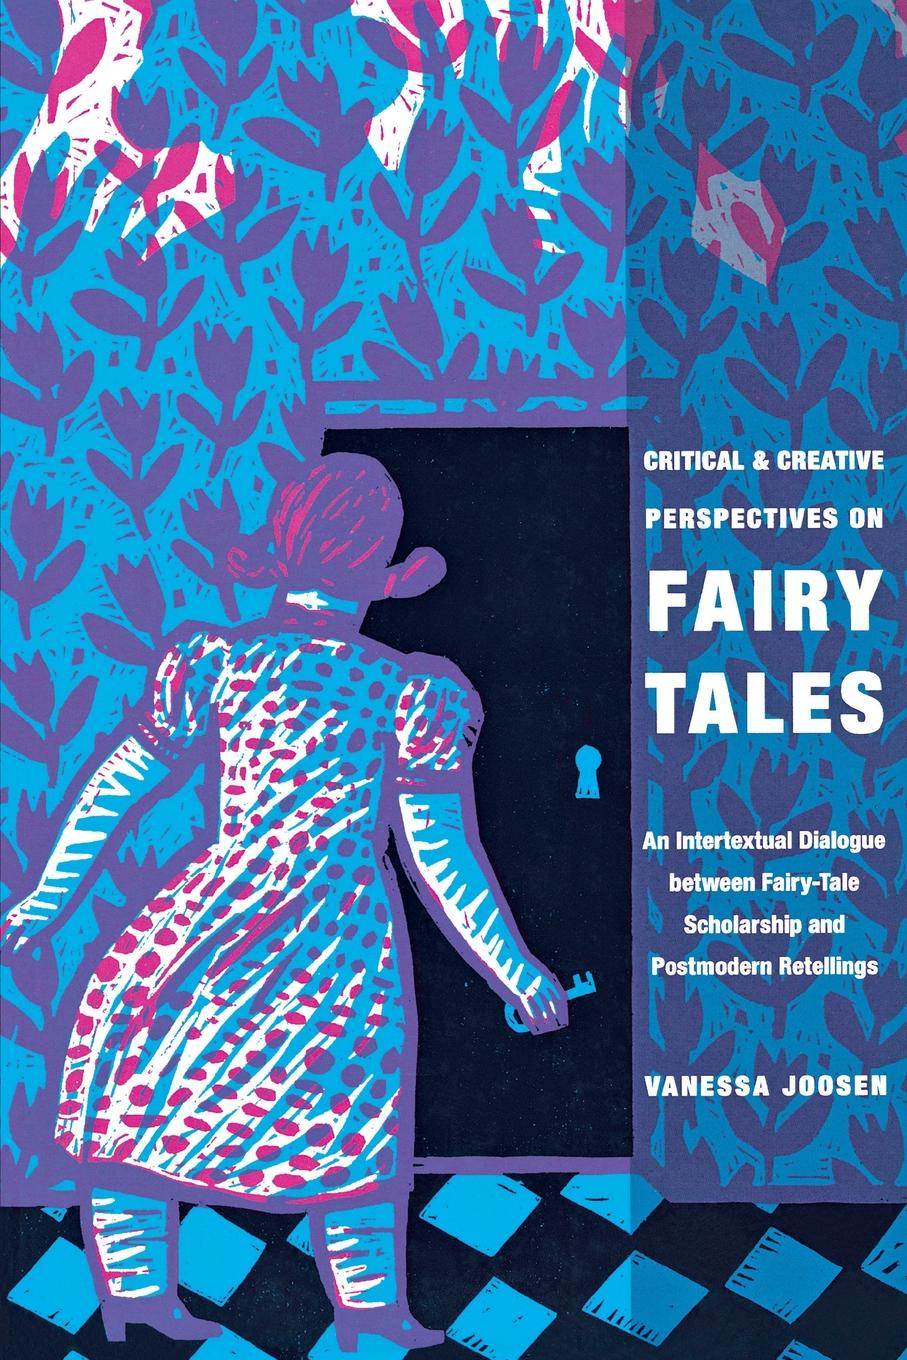 Vanessa Joosen Critical and Creative Perspectives on Fairy Tales. An Intertextual Dialogue Between Fairy-Tale Scholarship and Postmodern Retellings